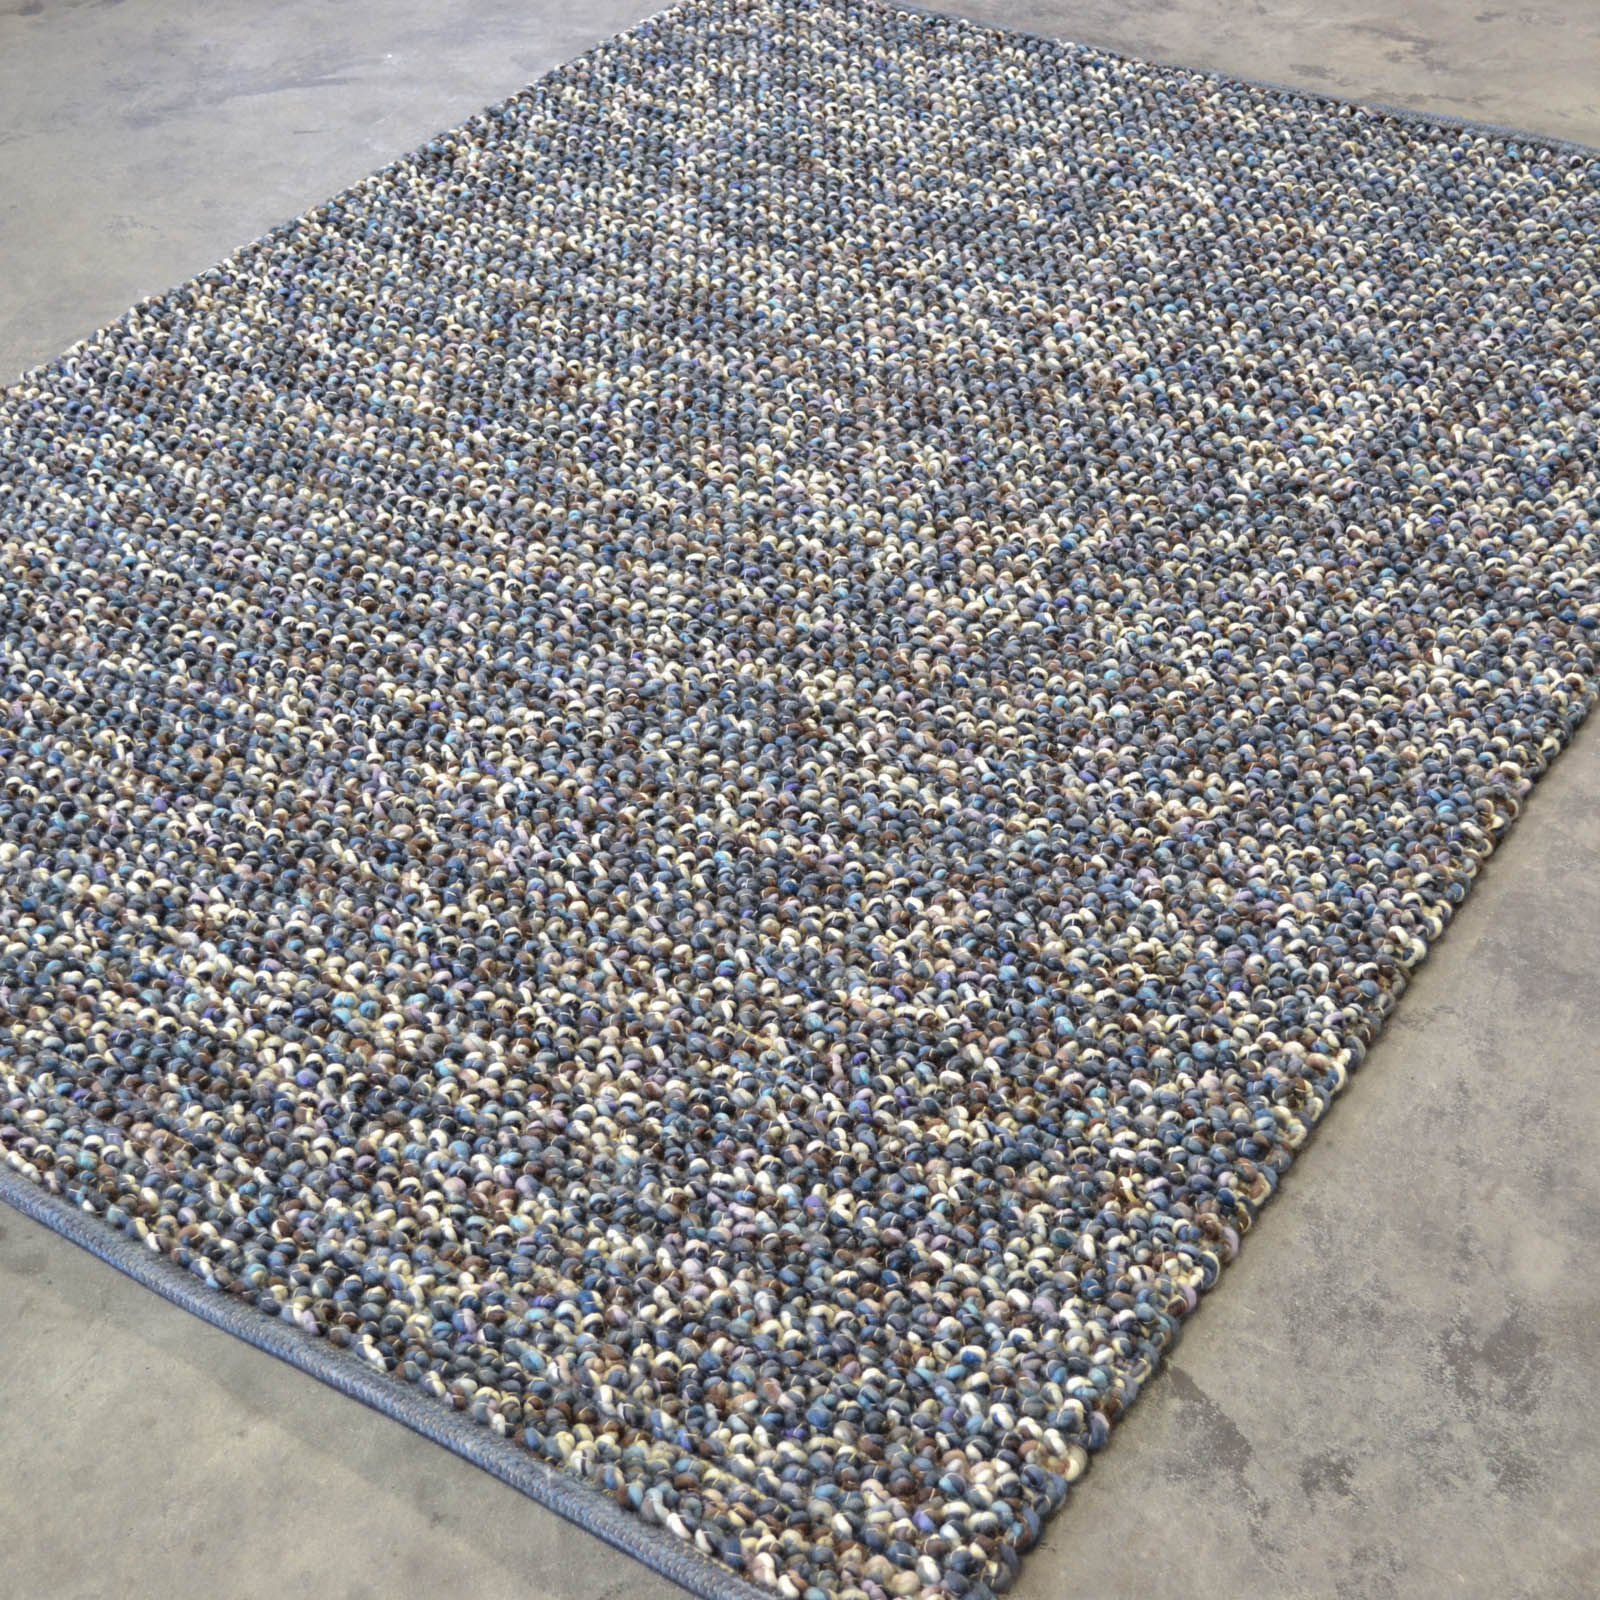 Marble Rugs 29508 by Brink and Campman